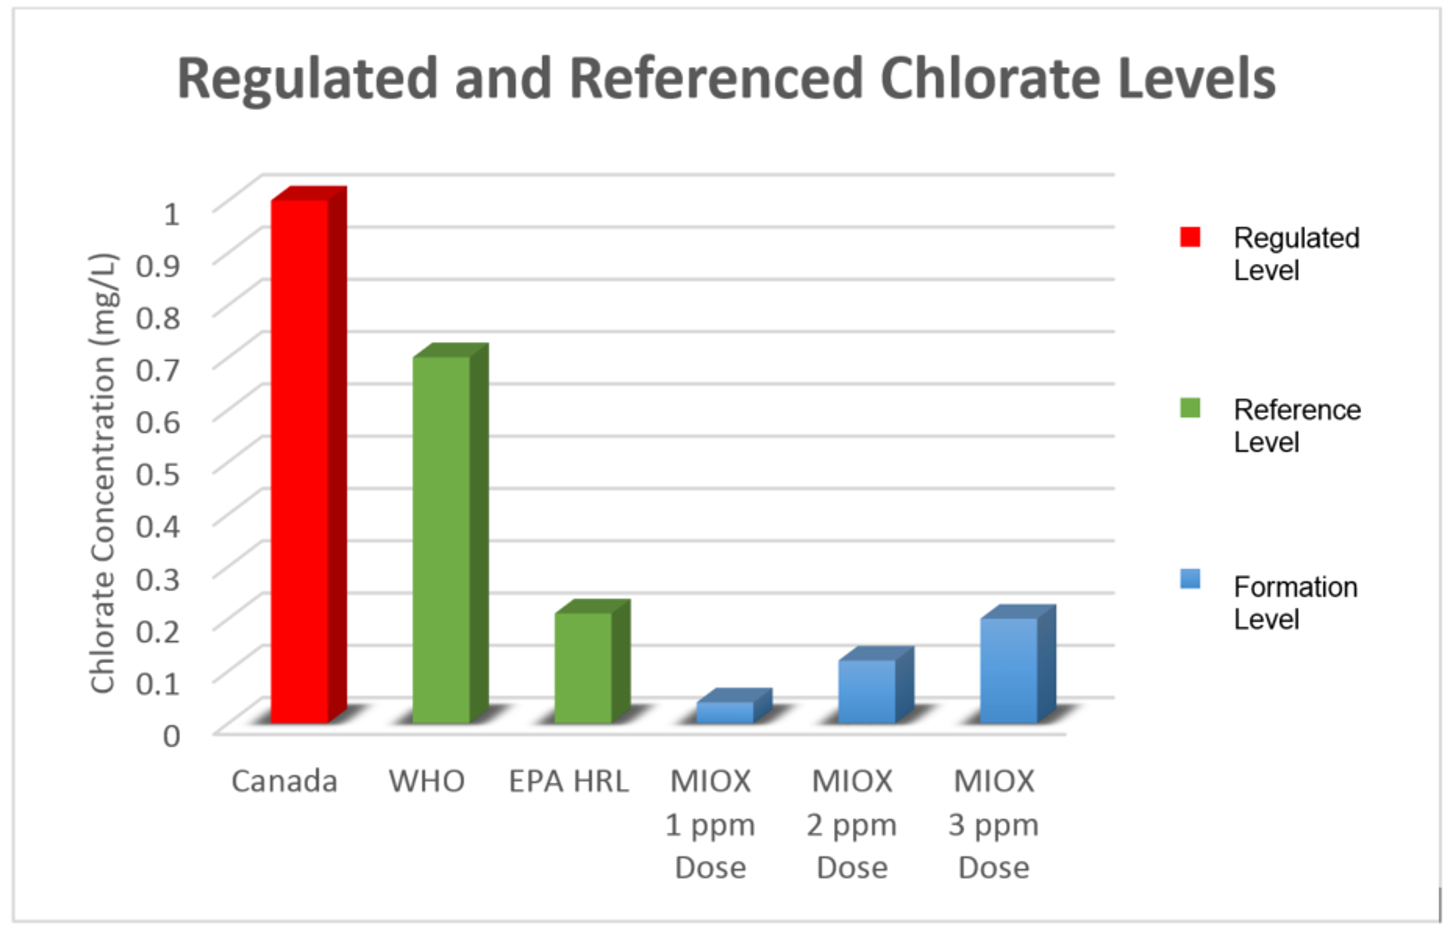 Regulated and Referenced Chlorate Levels